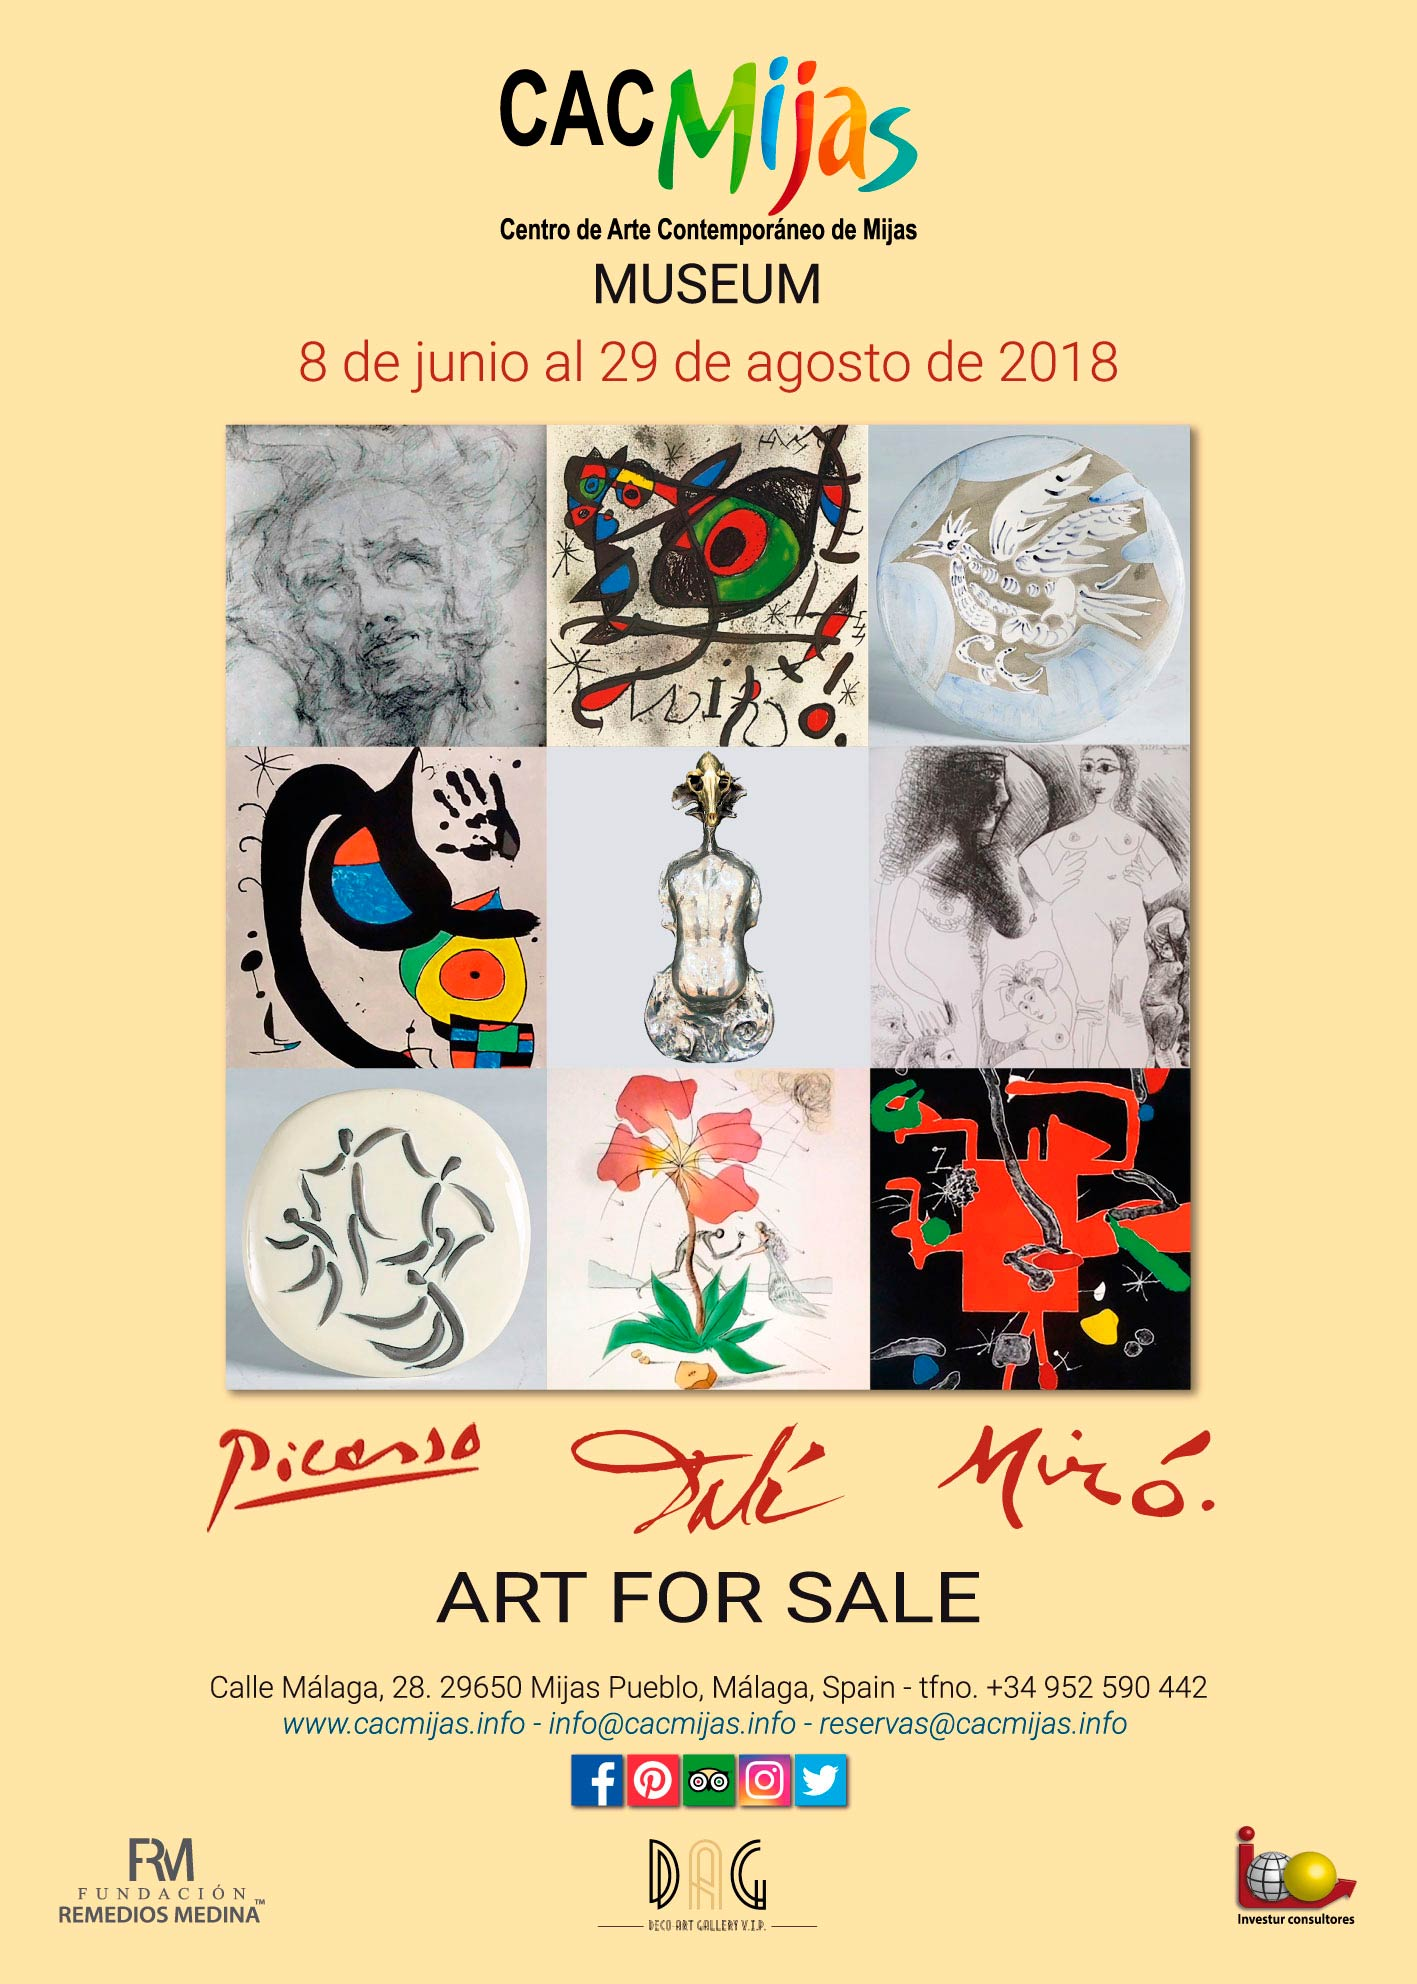 PICASSO, DALÍ, MIRÓ. ART FOR SALE